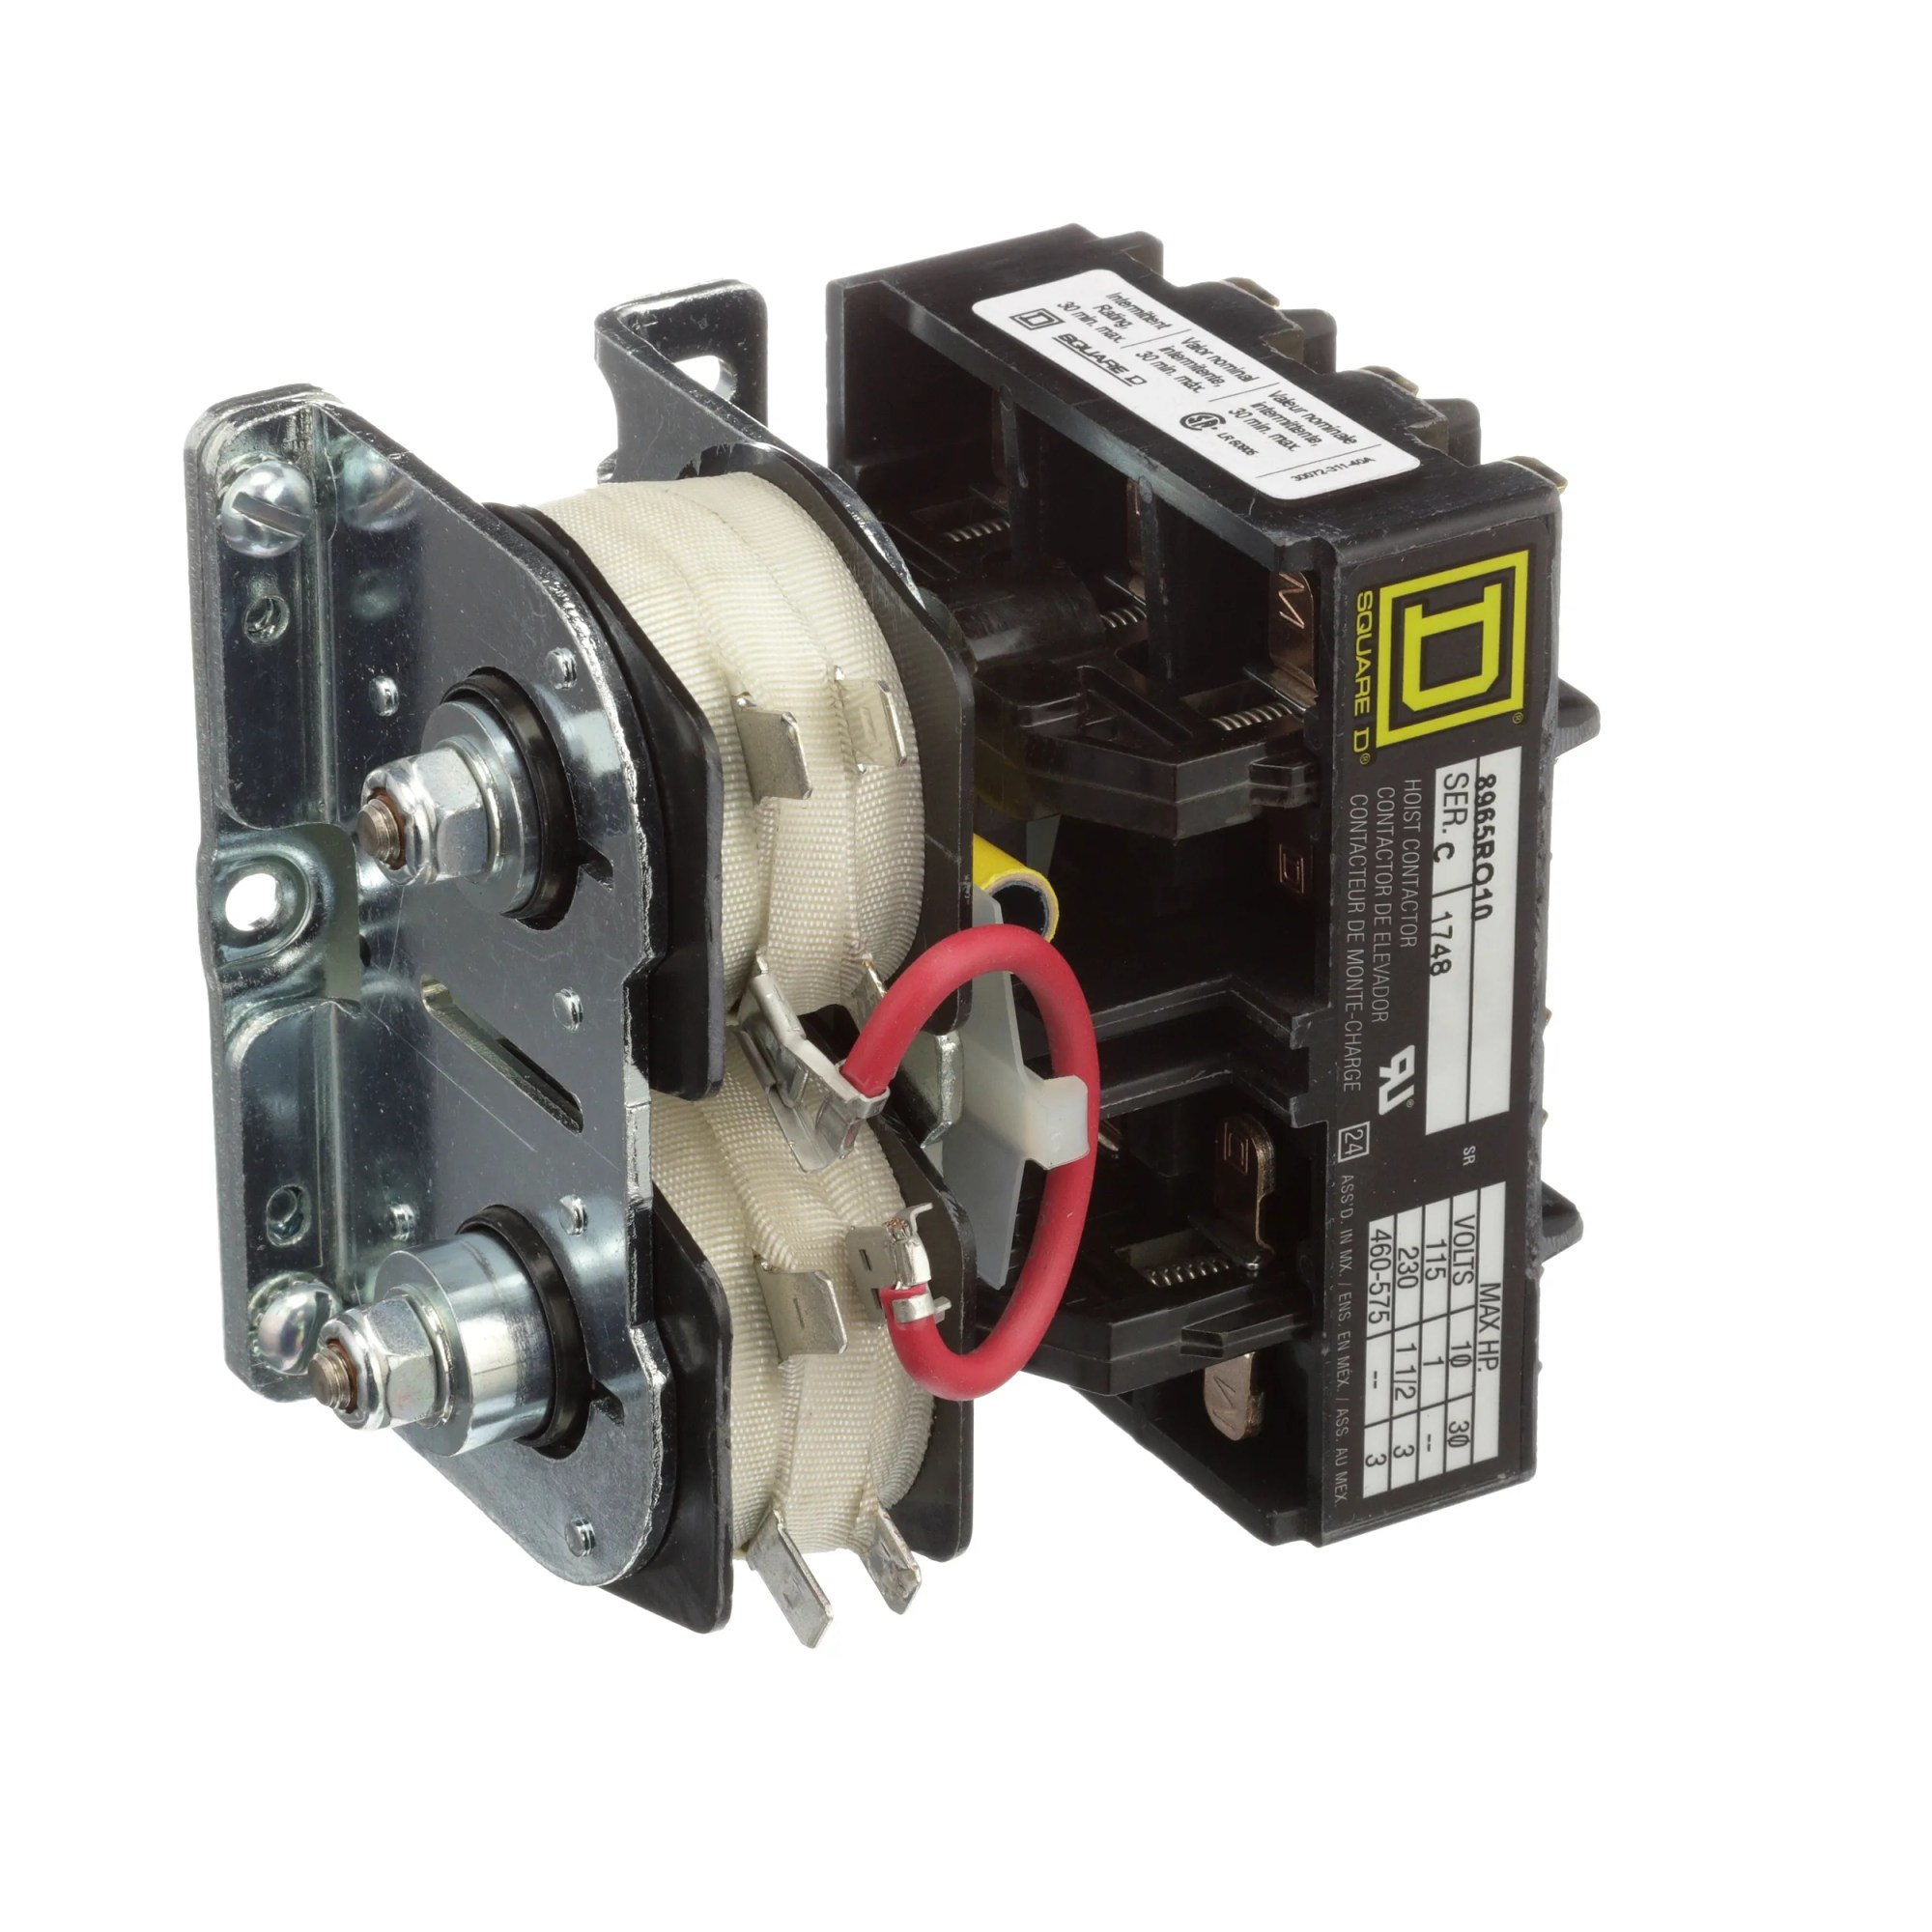 hight resolution of square d 8965ro10v01 8965r 3 pole contactor 575 v ac 24 v ac coil allied electronics automation